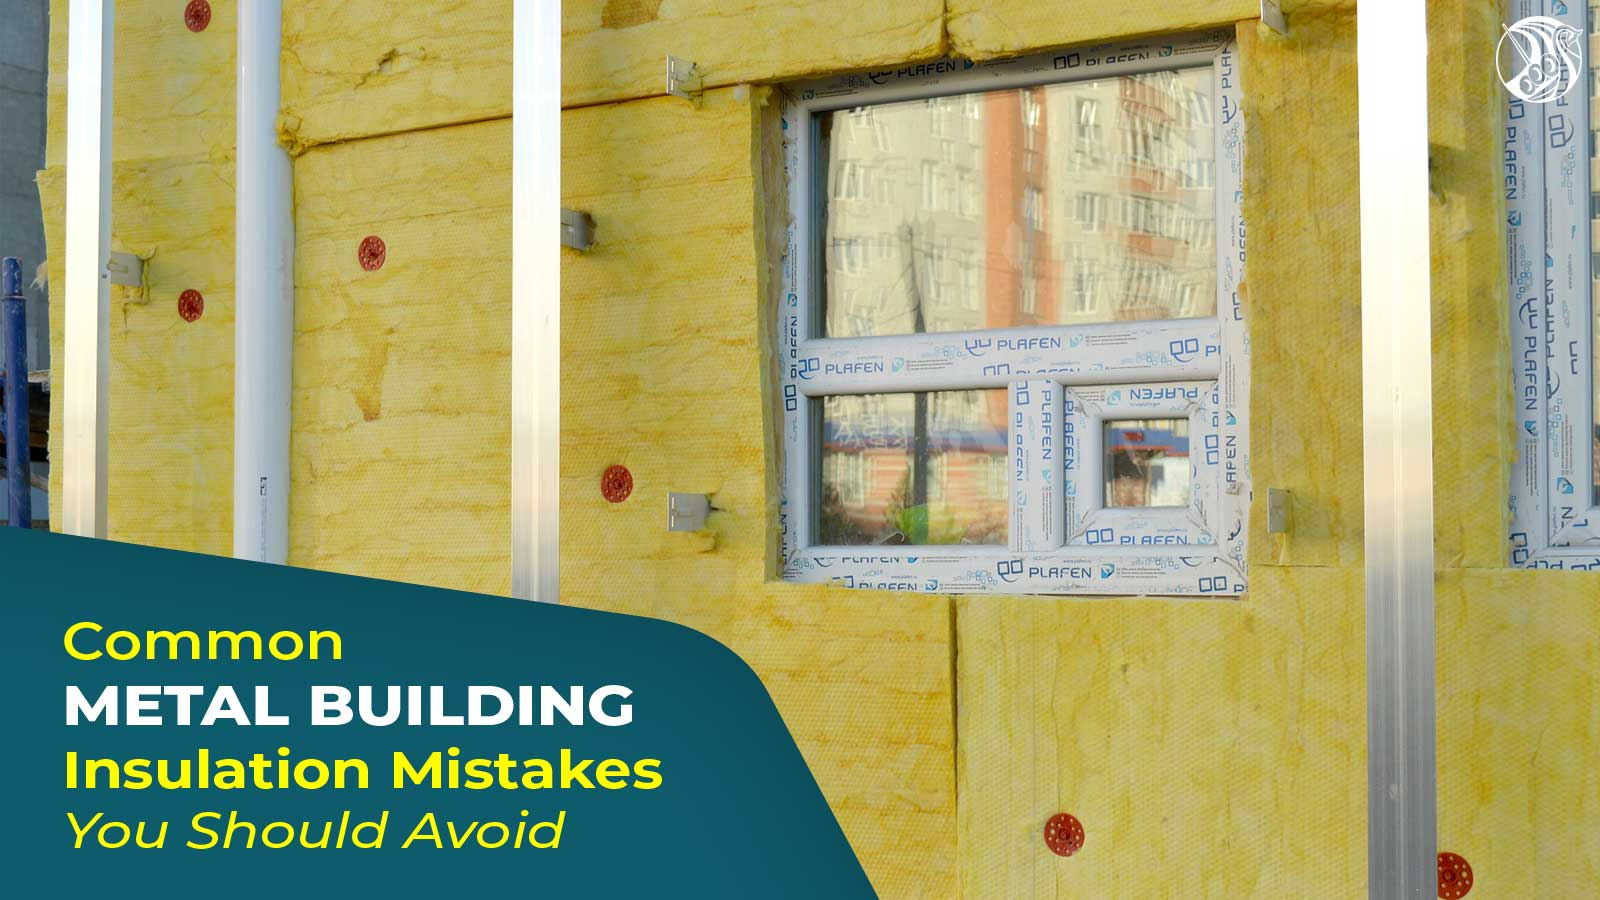 Common Metal Building Insulation Mistakes You Should Avoid